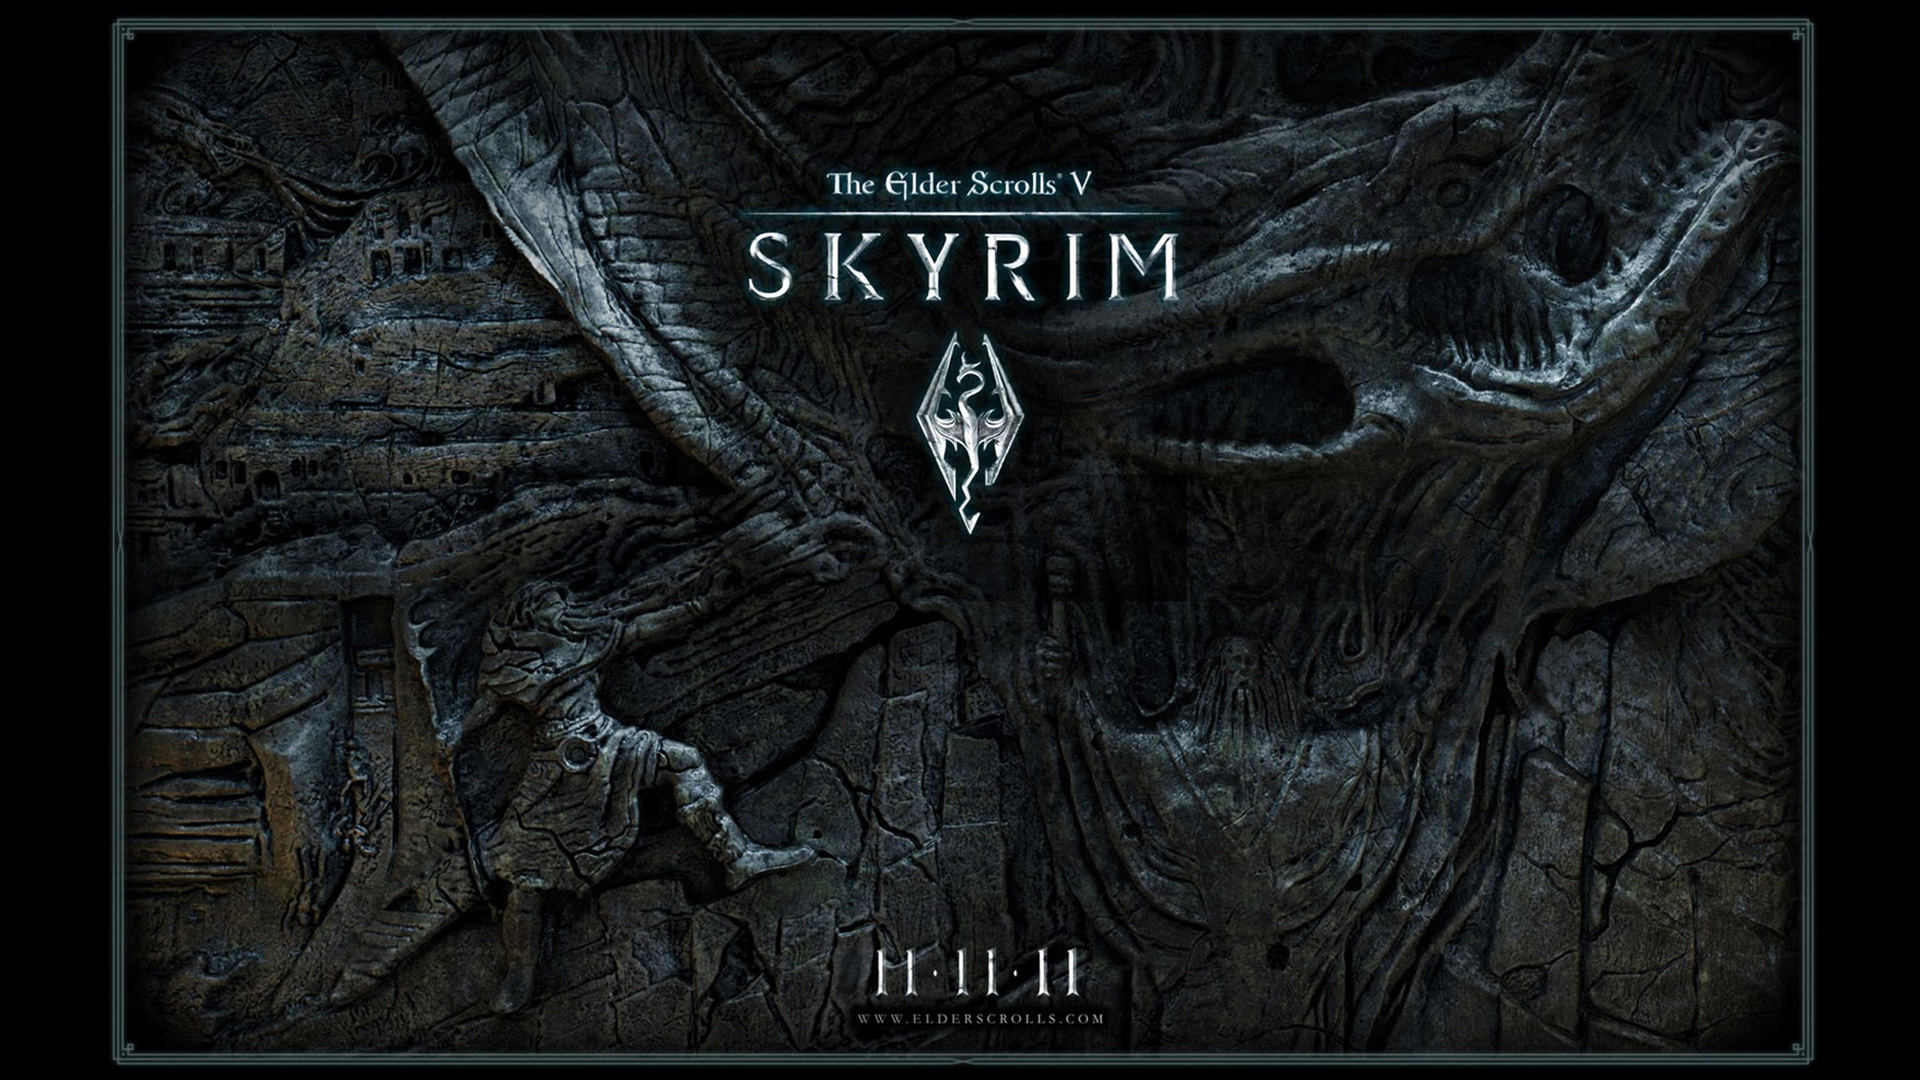 Free The Elder Scrolls V: Skyrim Wallpaper in 1920x1080